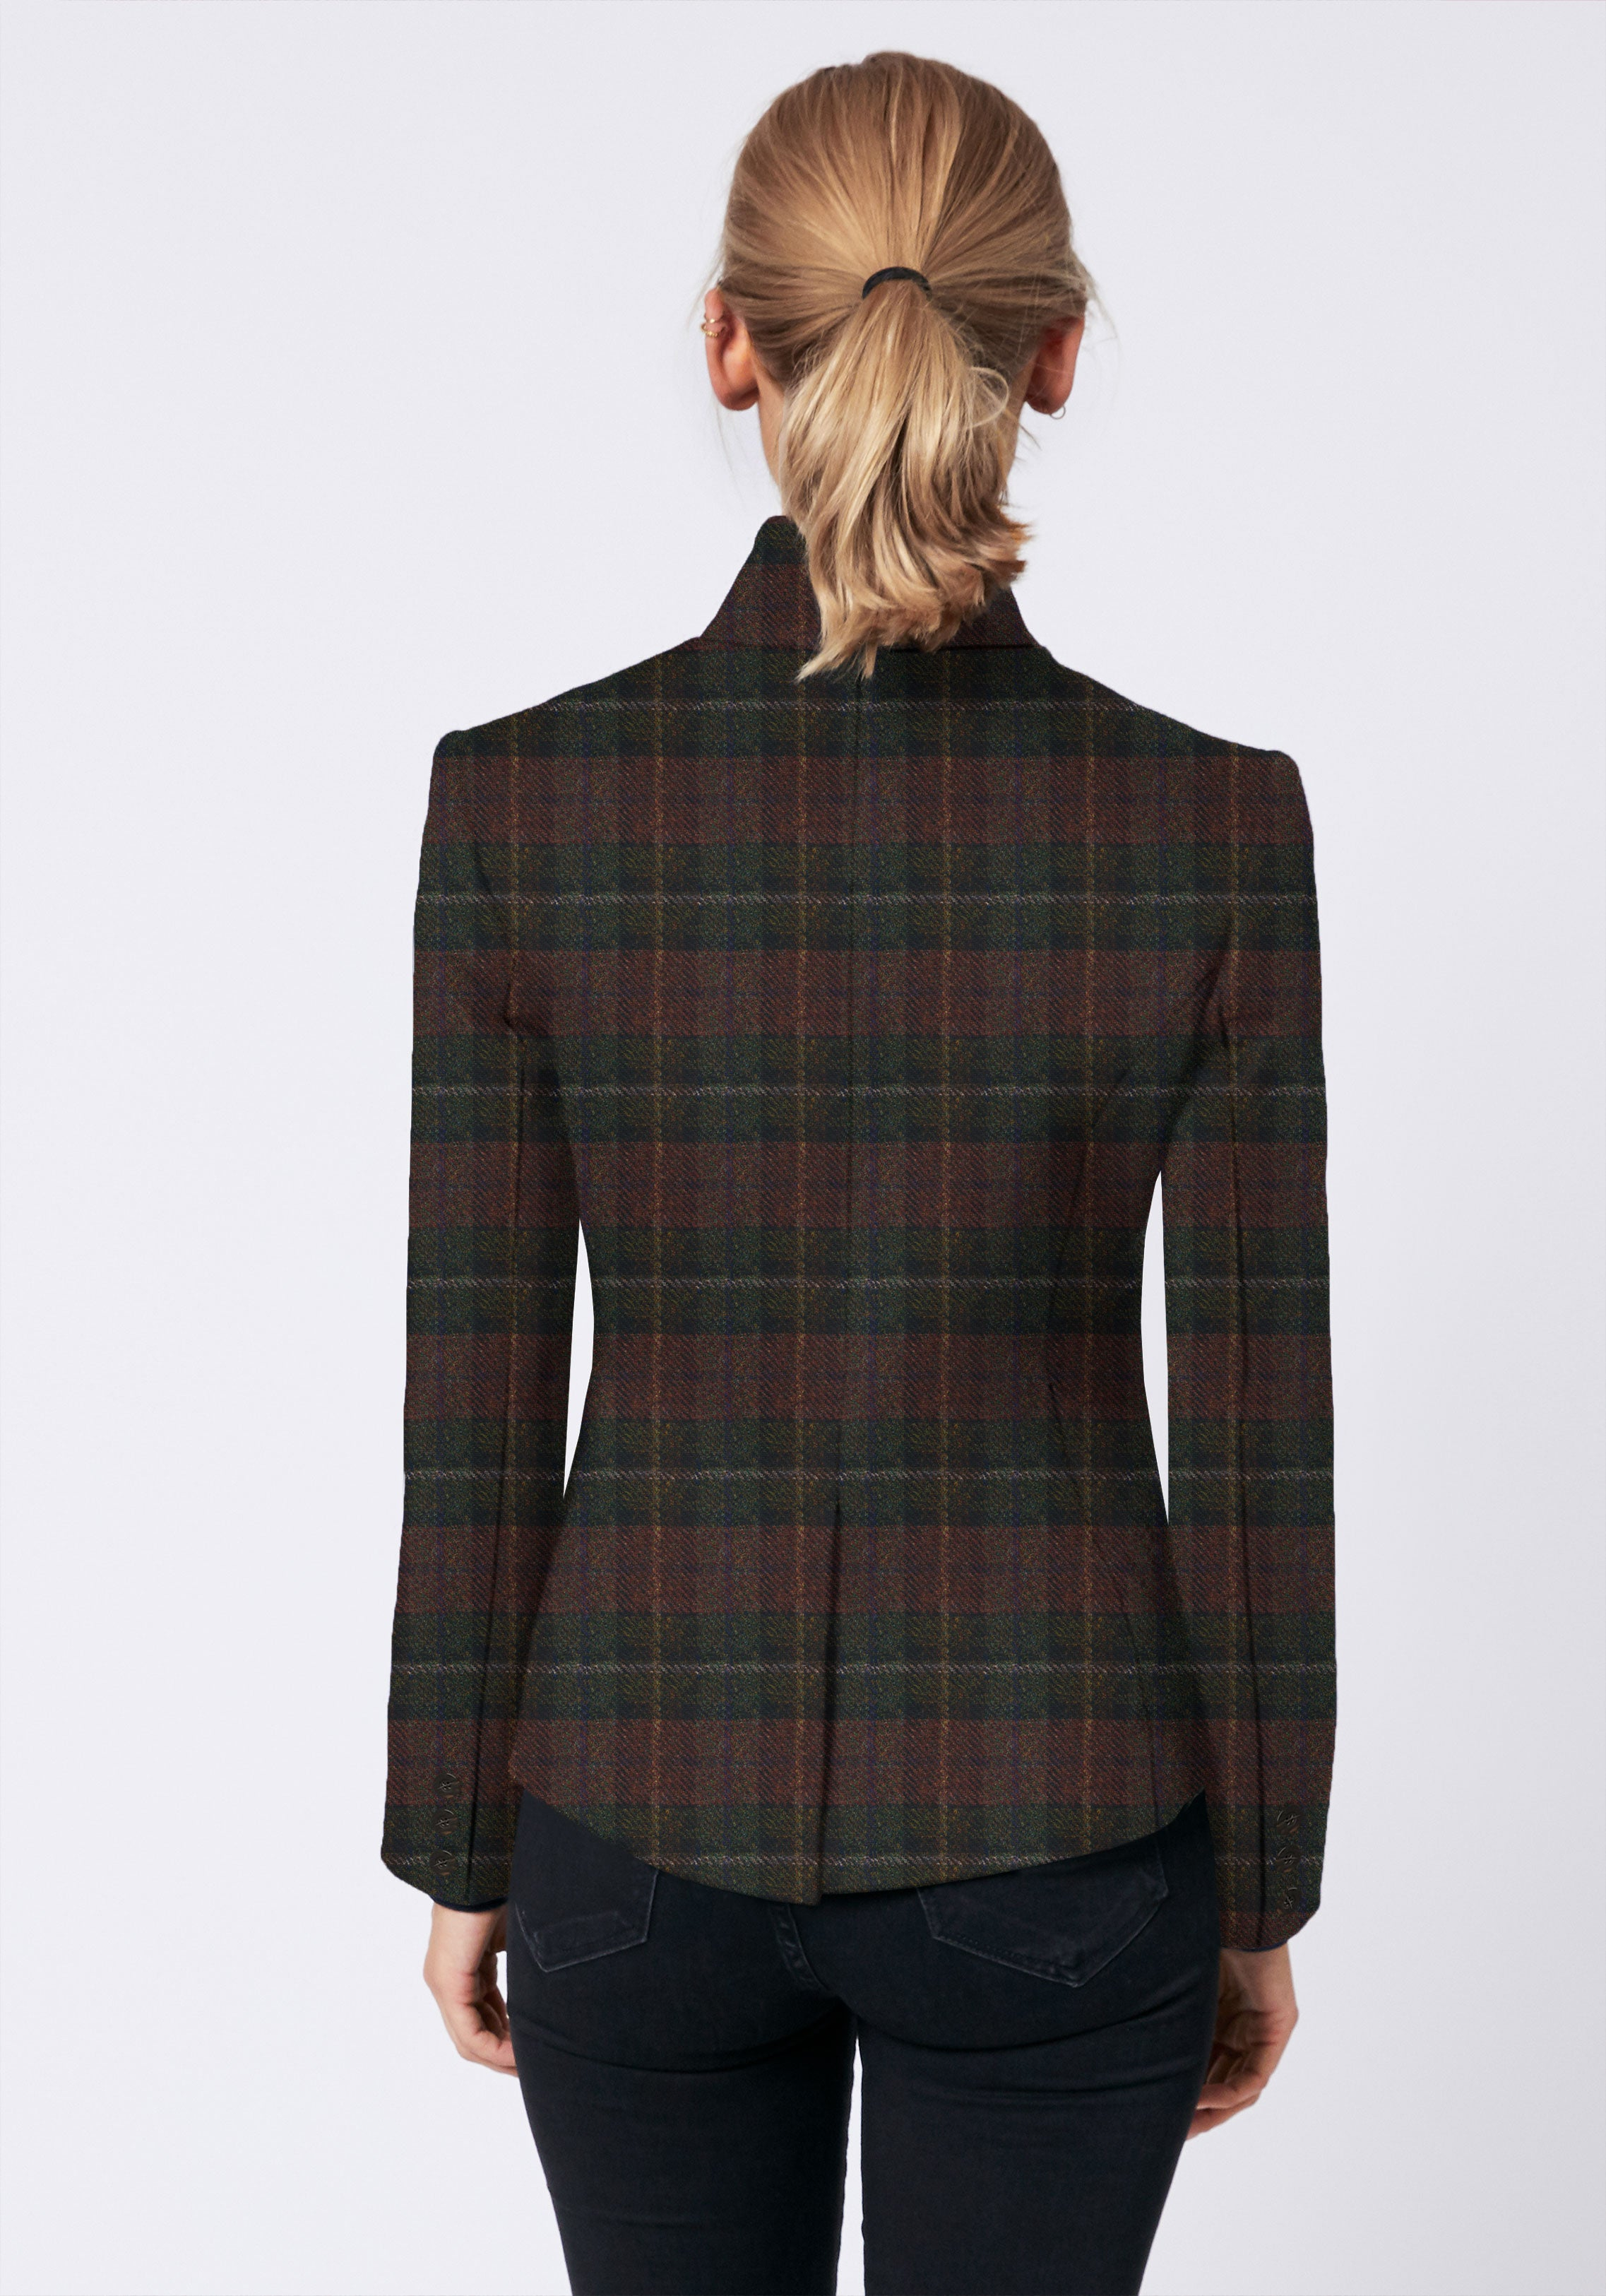 Tallulah Jacket in Brown and Green Check